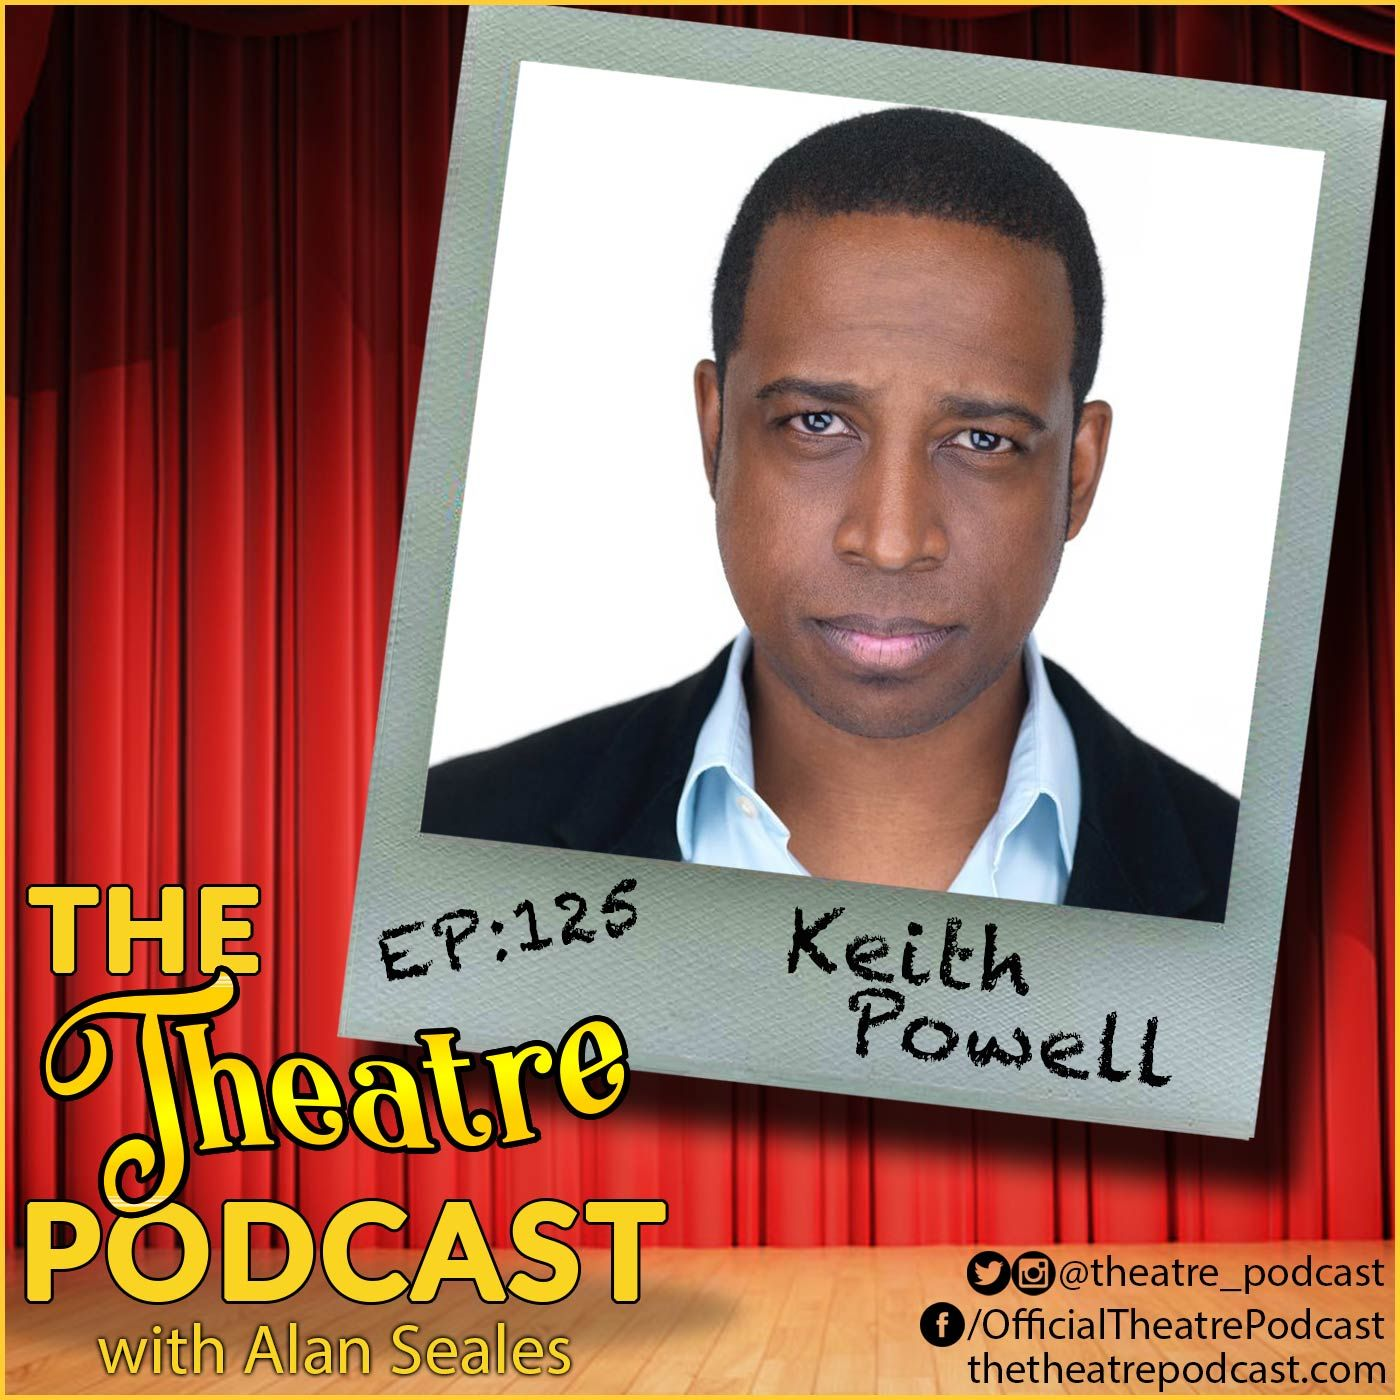 Ep125 - Keith Powell: 30 Rock, This is Us, Connecting